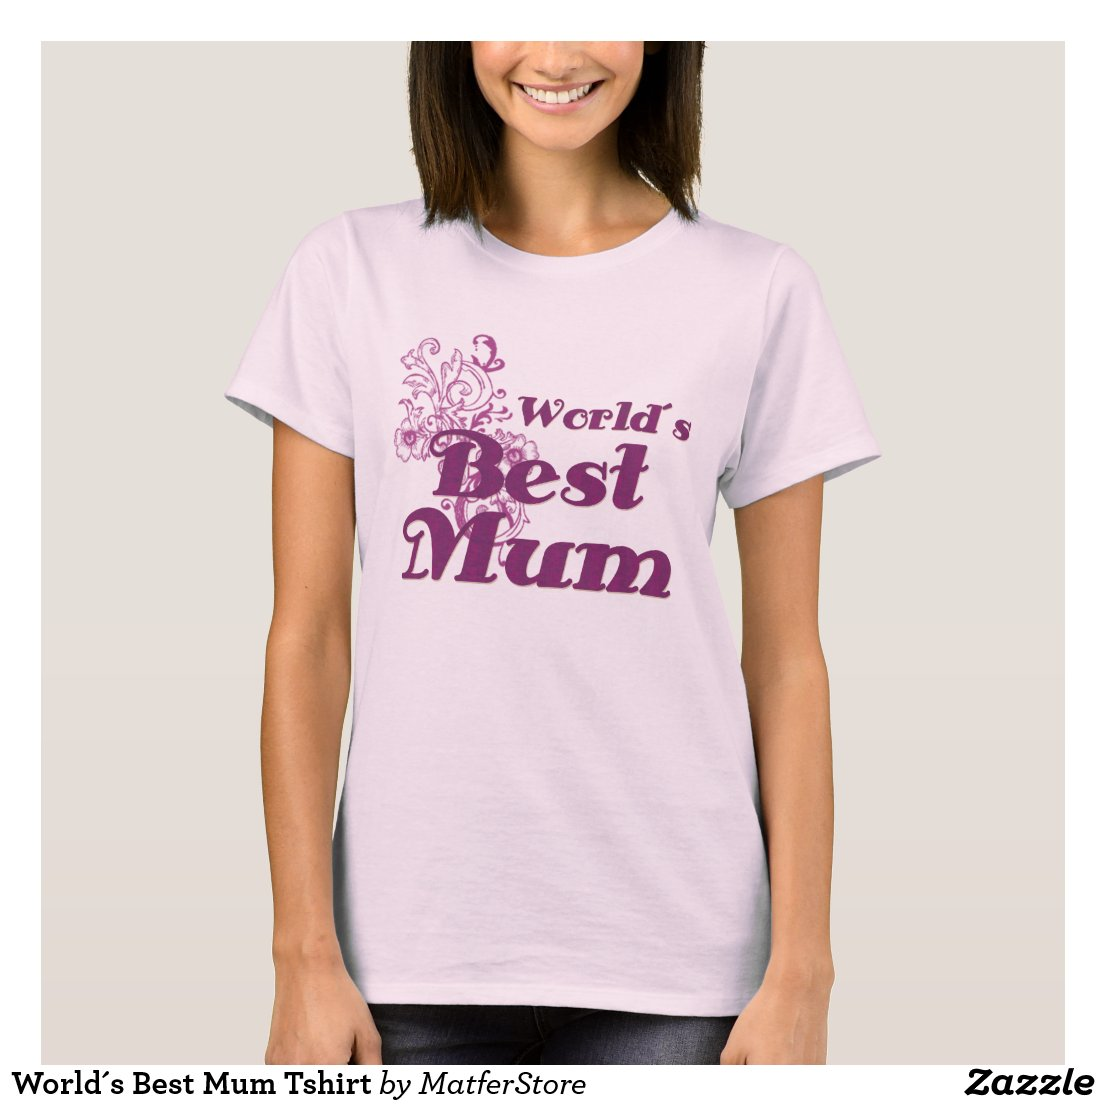 World's Best Mum T-Shirt